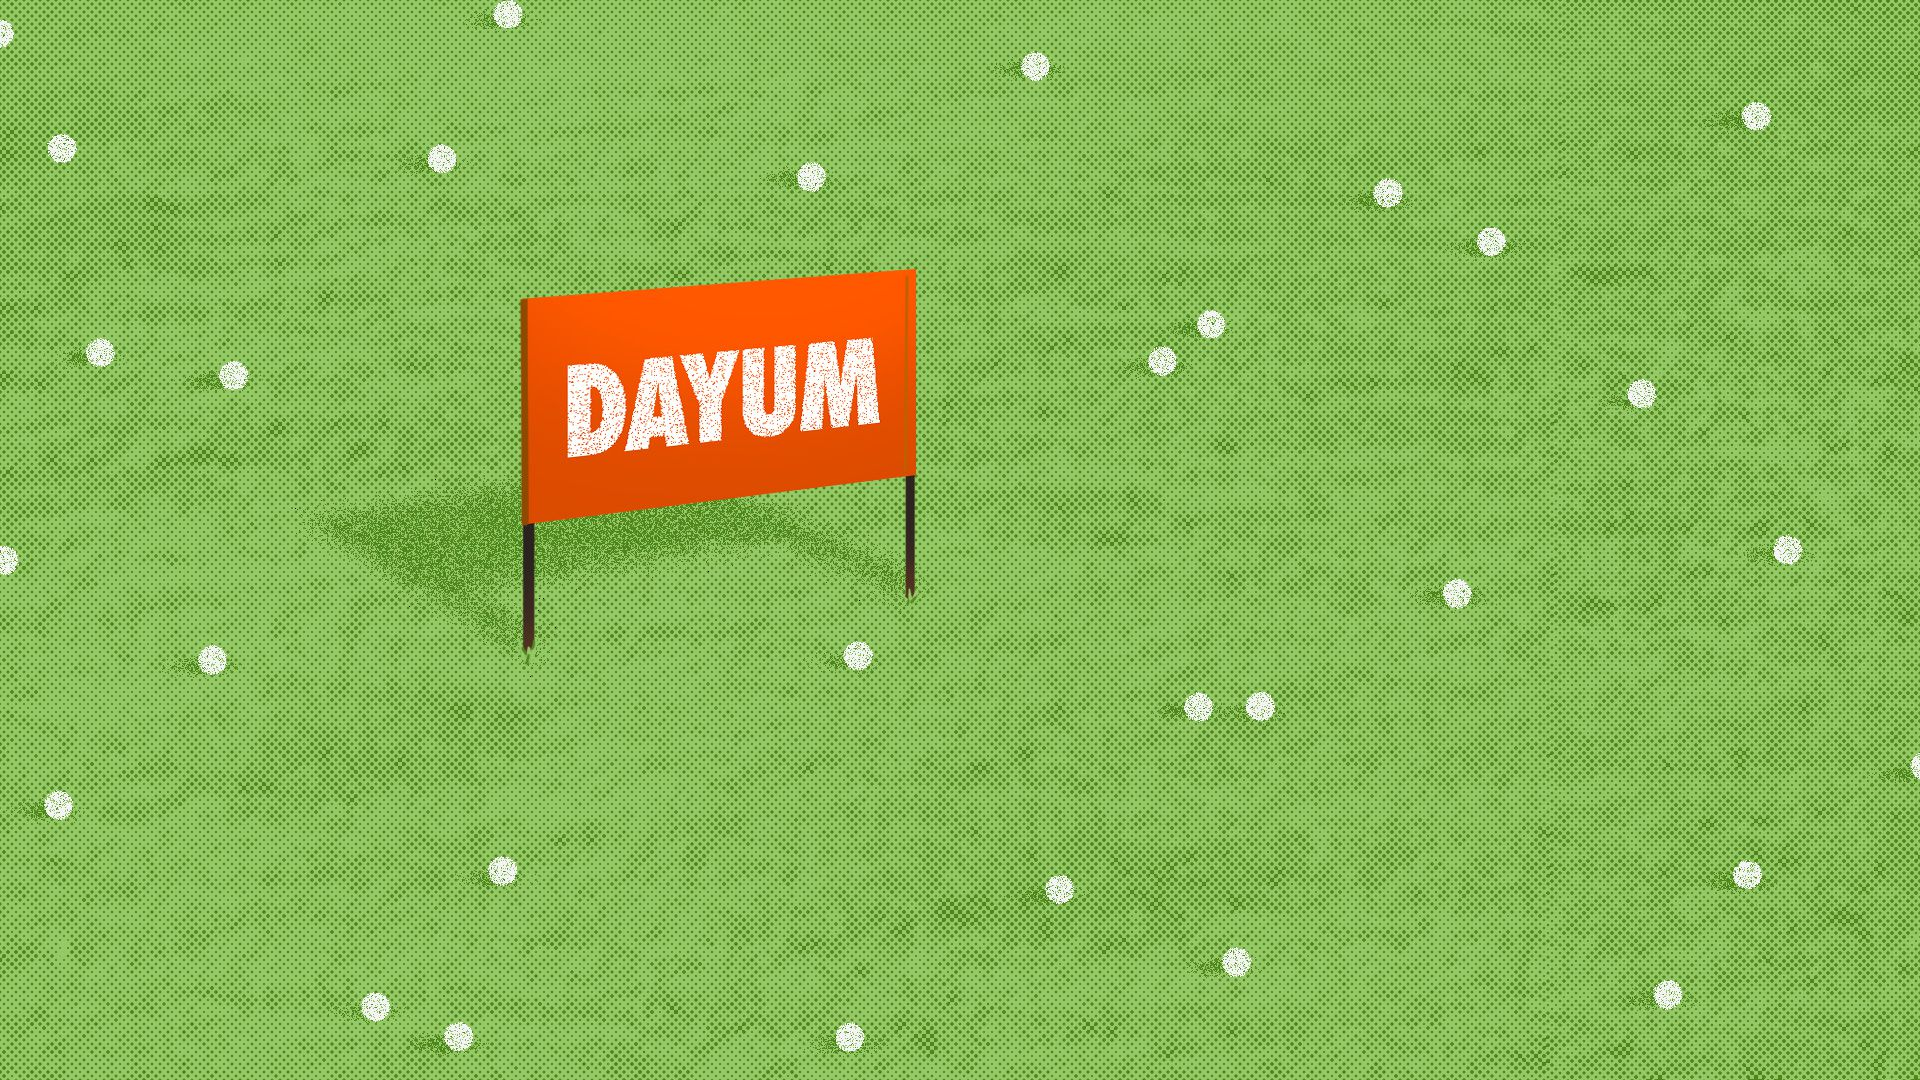 A golf driving range sign reading 'Dayum'